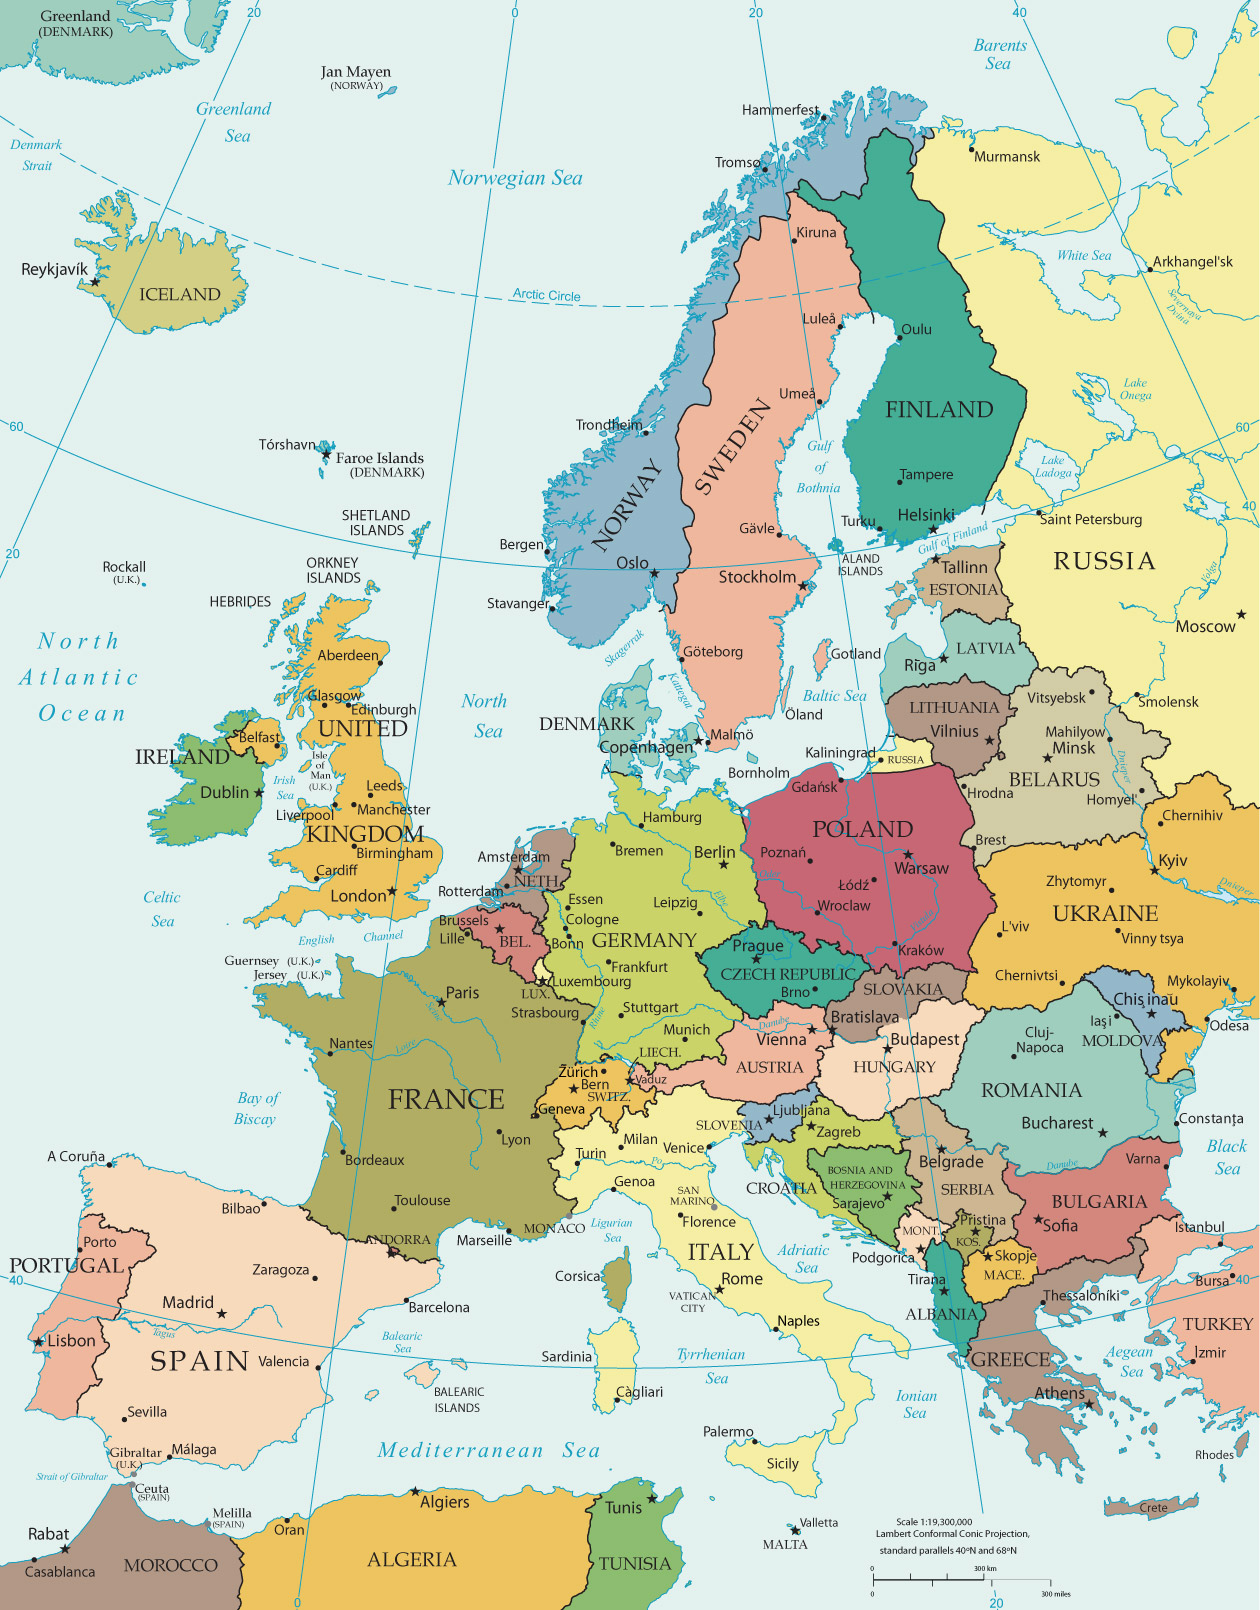 show map of europe with all countries Political Map Of Europe Countries